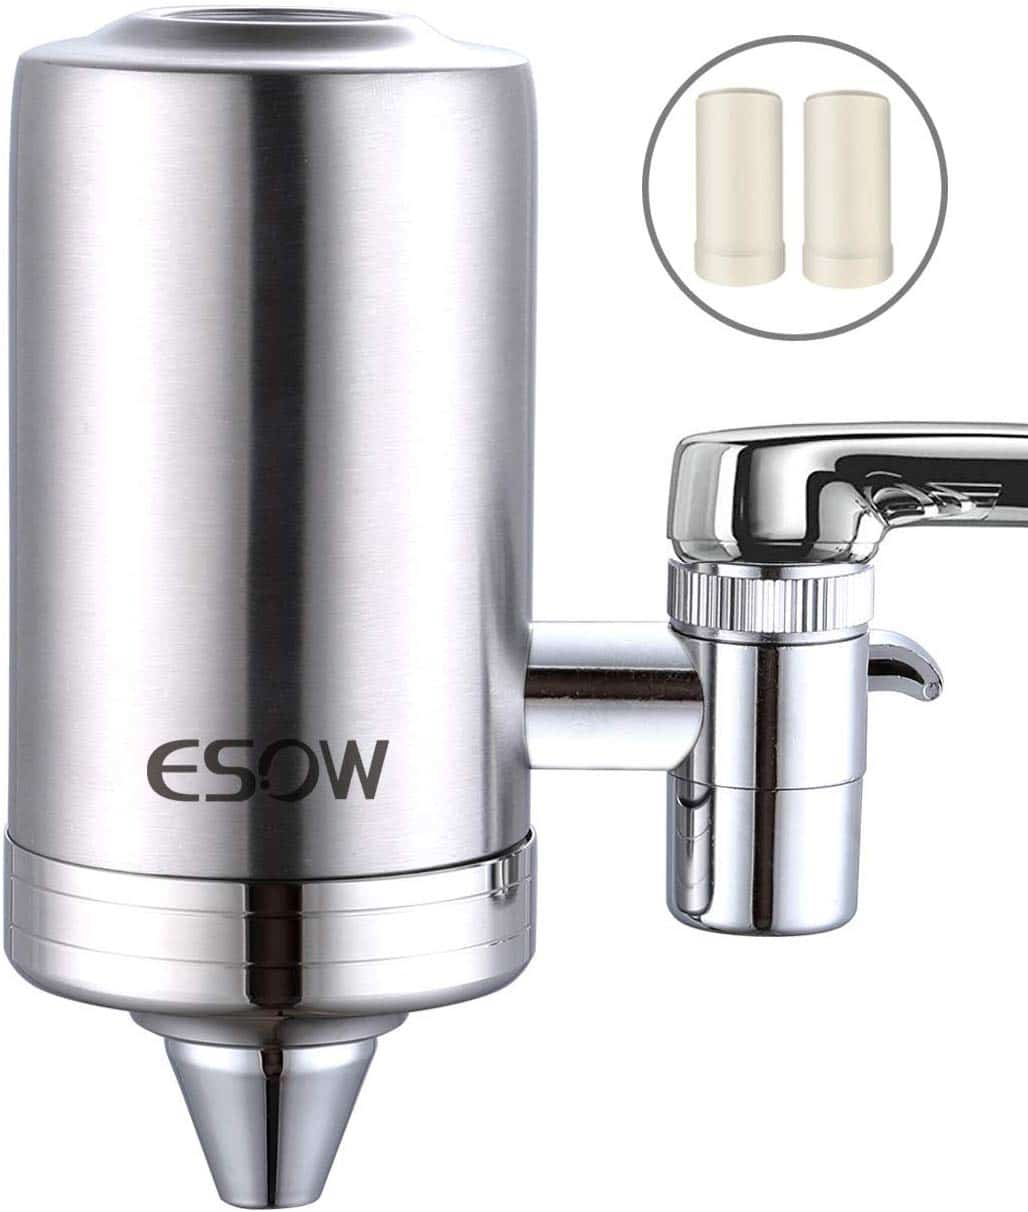 ESOW Faucet Mount Water Filter, SUS304